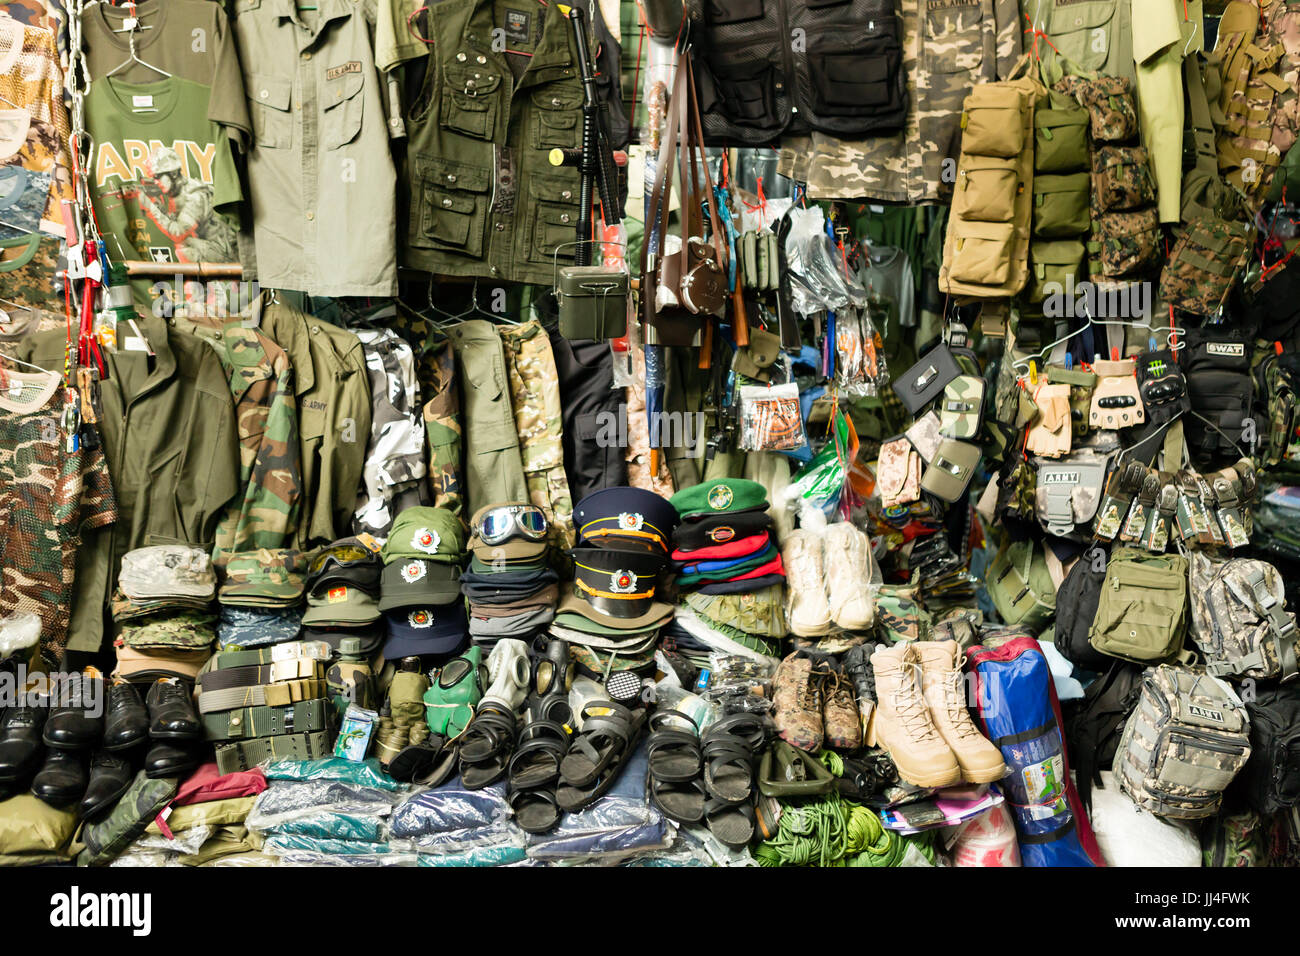 Dan Sinh Market known as the War Surplus Market is in Ho Chi Minh City, Vietnam and is known for Vietnam War surplus - Stock Image